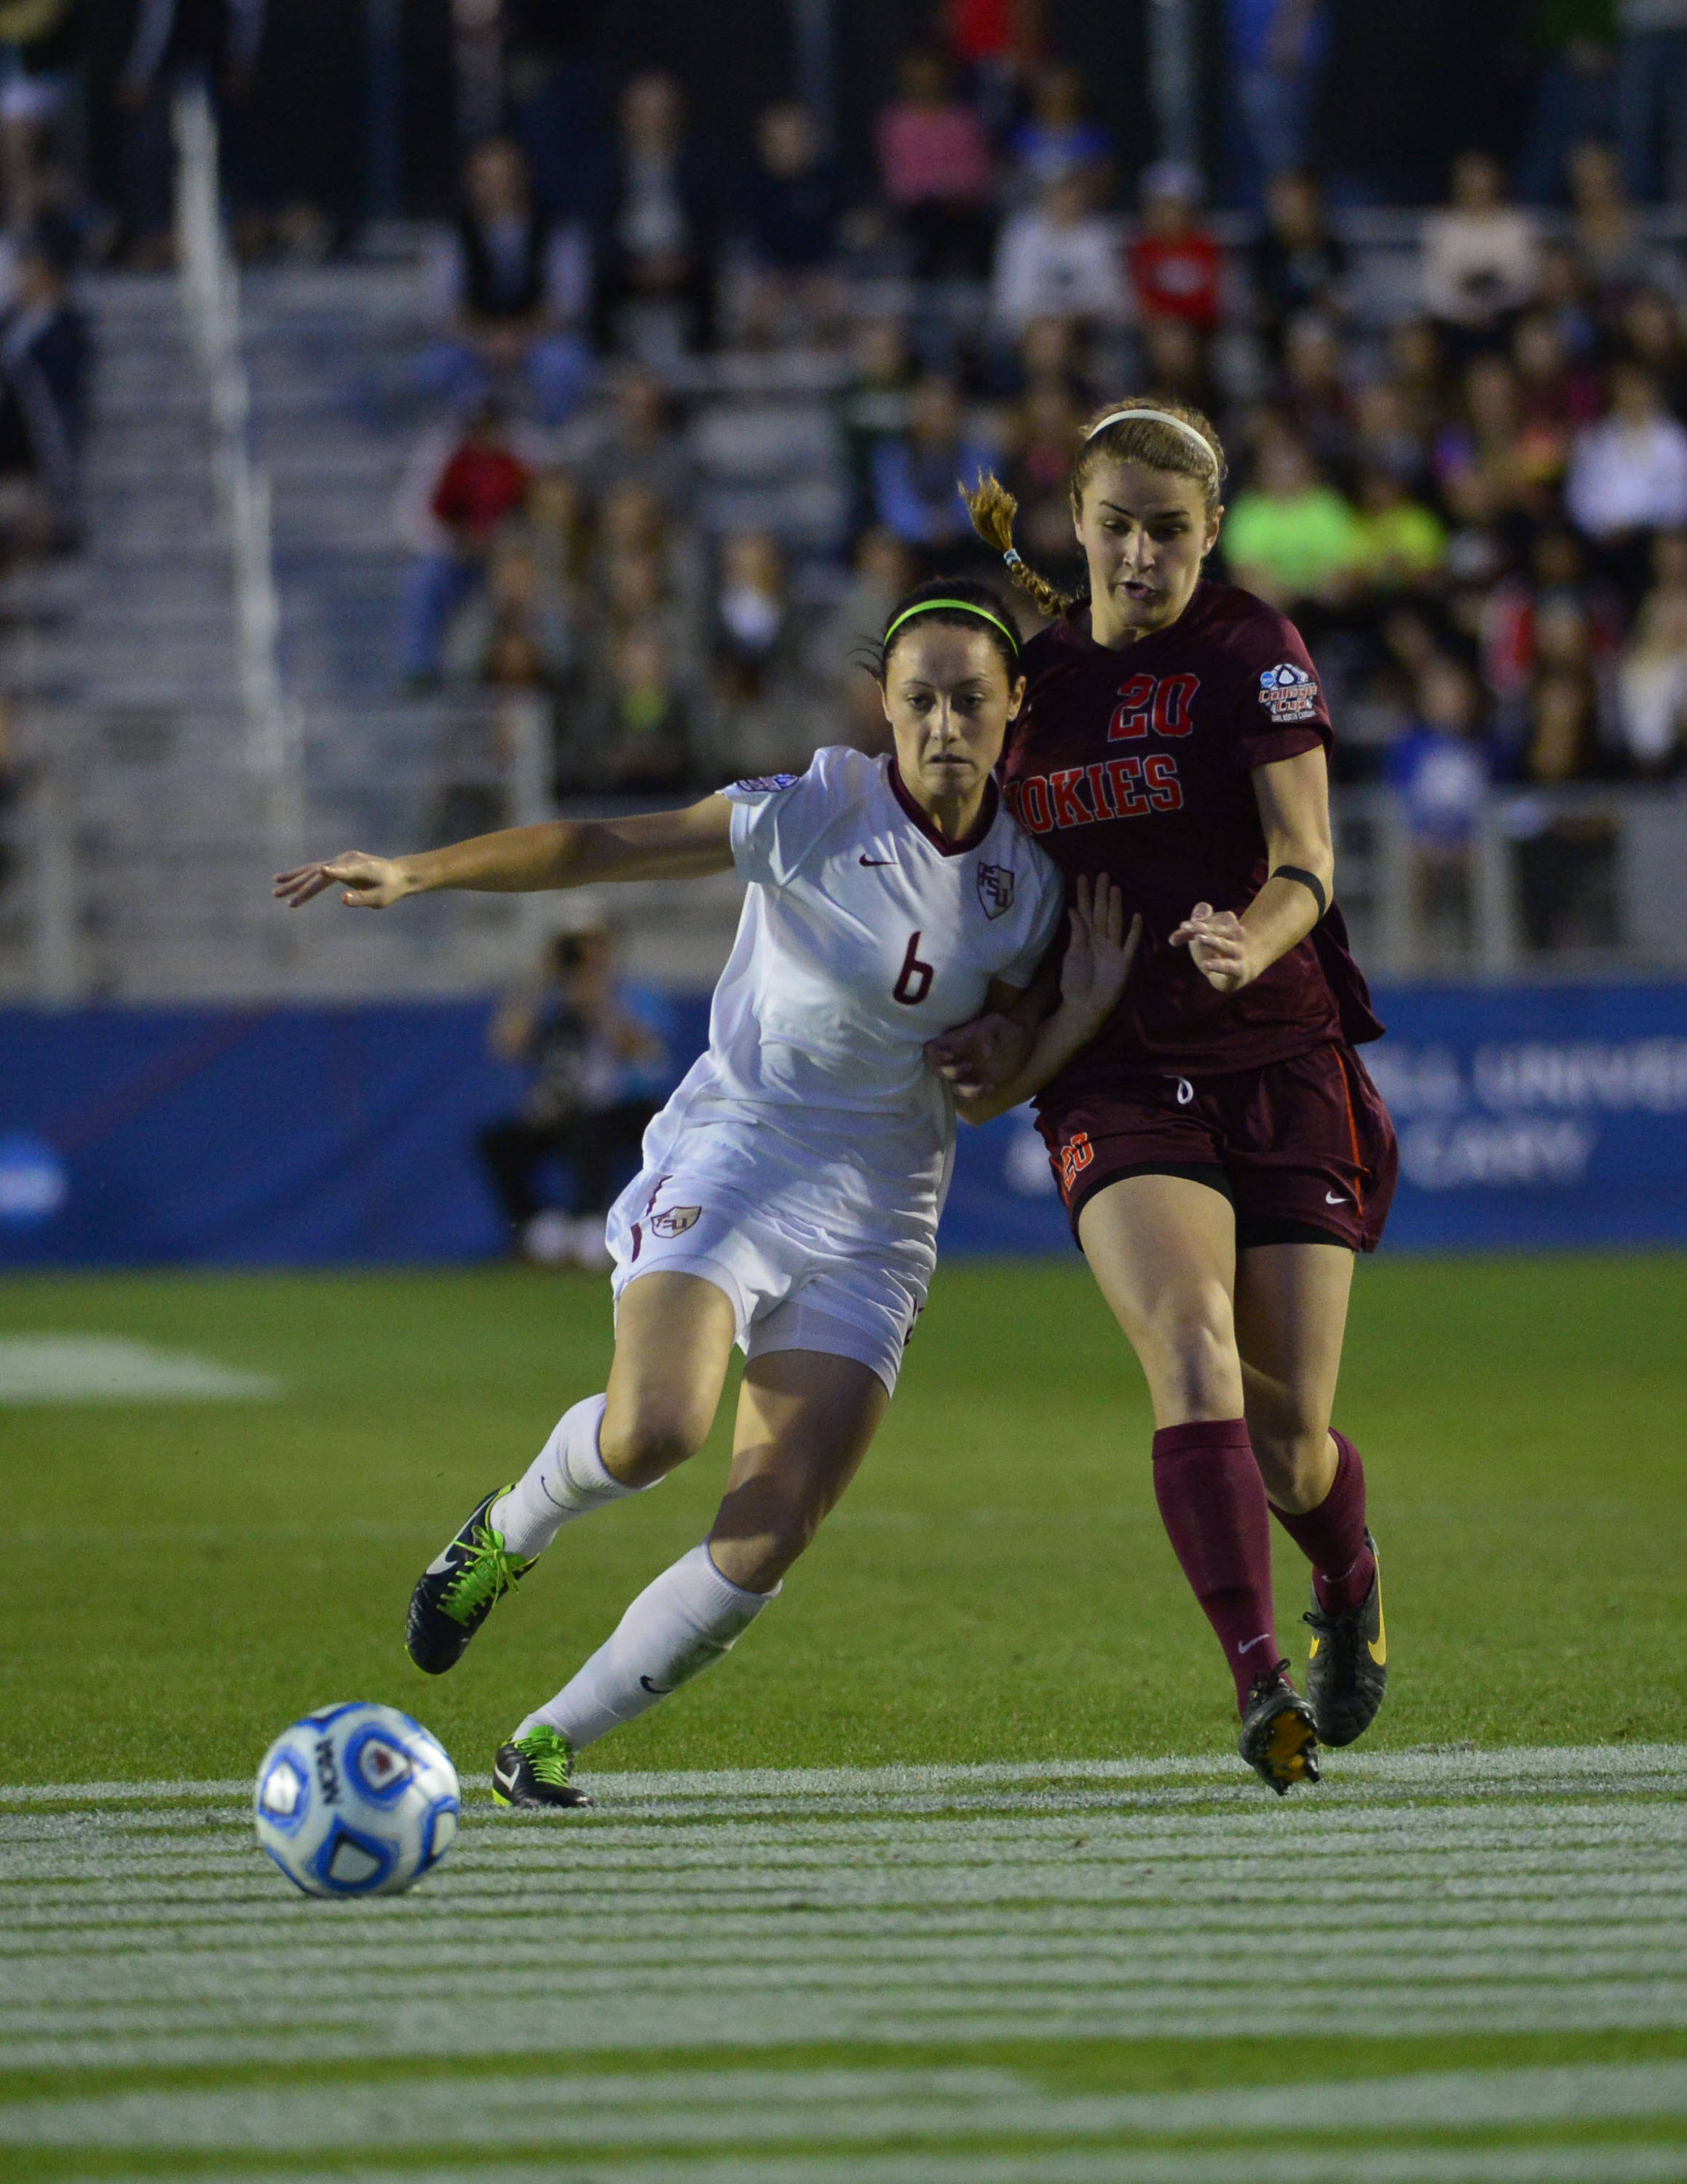 Dec 6, 2013; Cary, NC, USA; Florida State Seminoles defender Megan Campbell (6) fights for the ball with Virginia Tech Hokies forward Murielle Tiernan (20) in the first half at WakeMed Soccer Park. Mandatory Credit: Bob Donnan-USA TODAY Sports